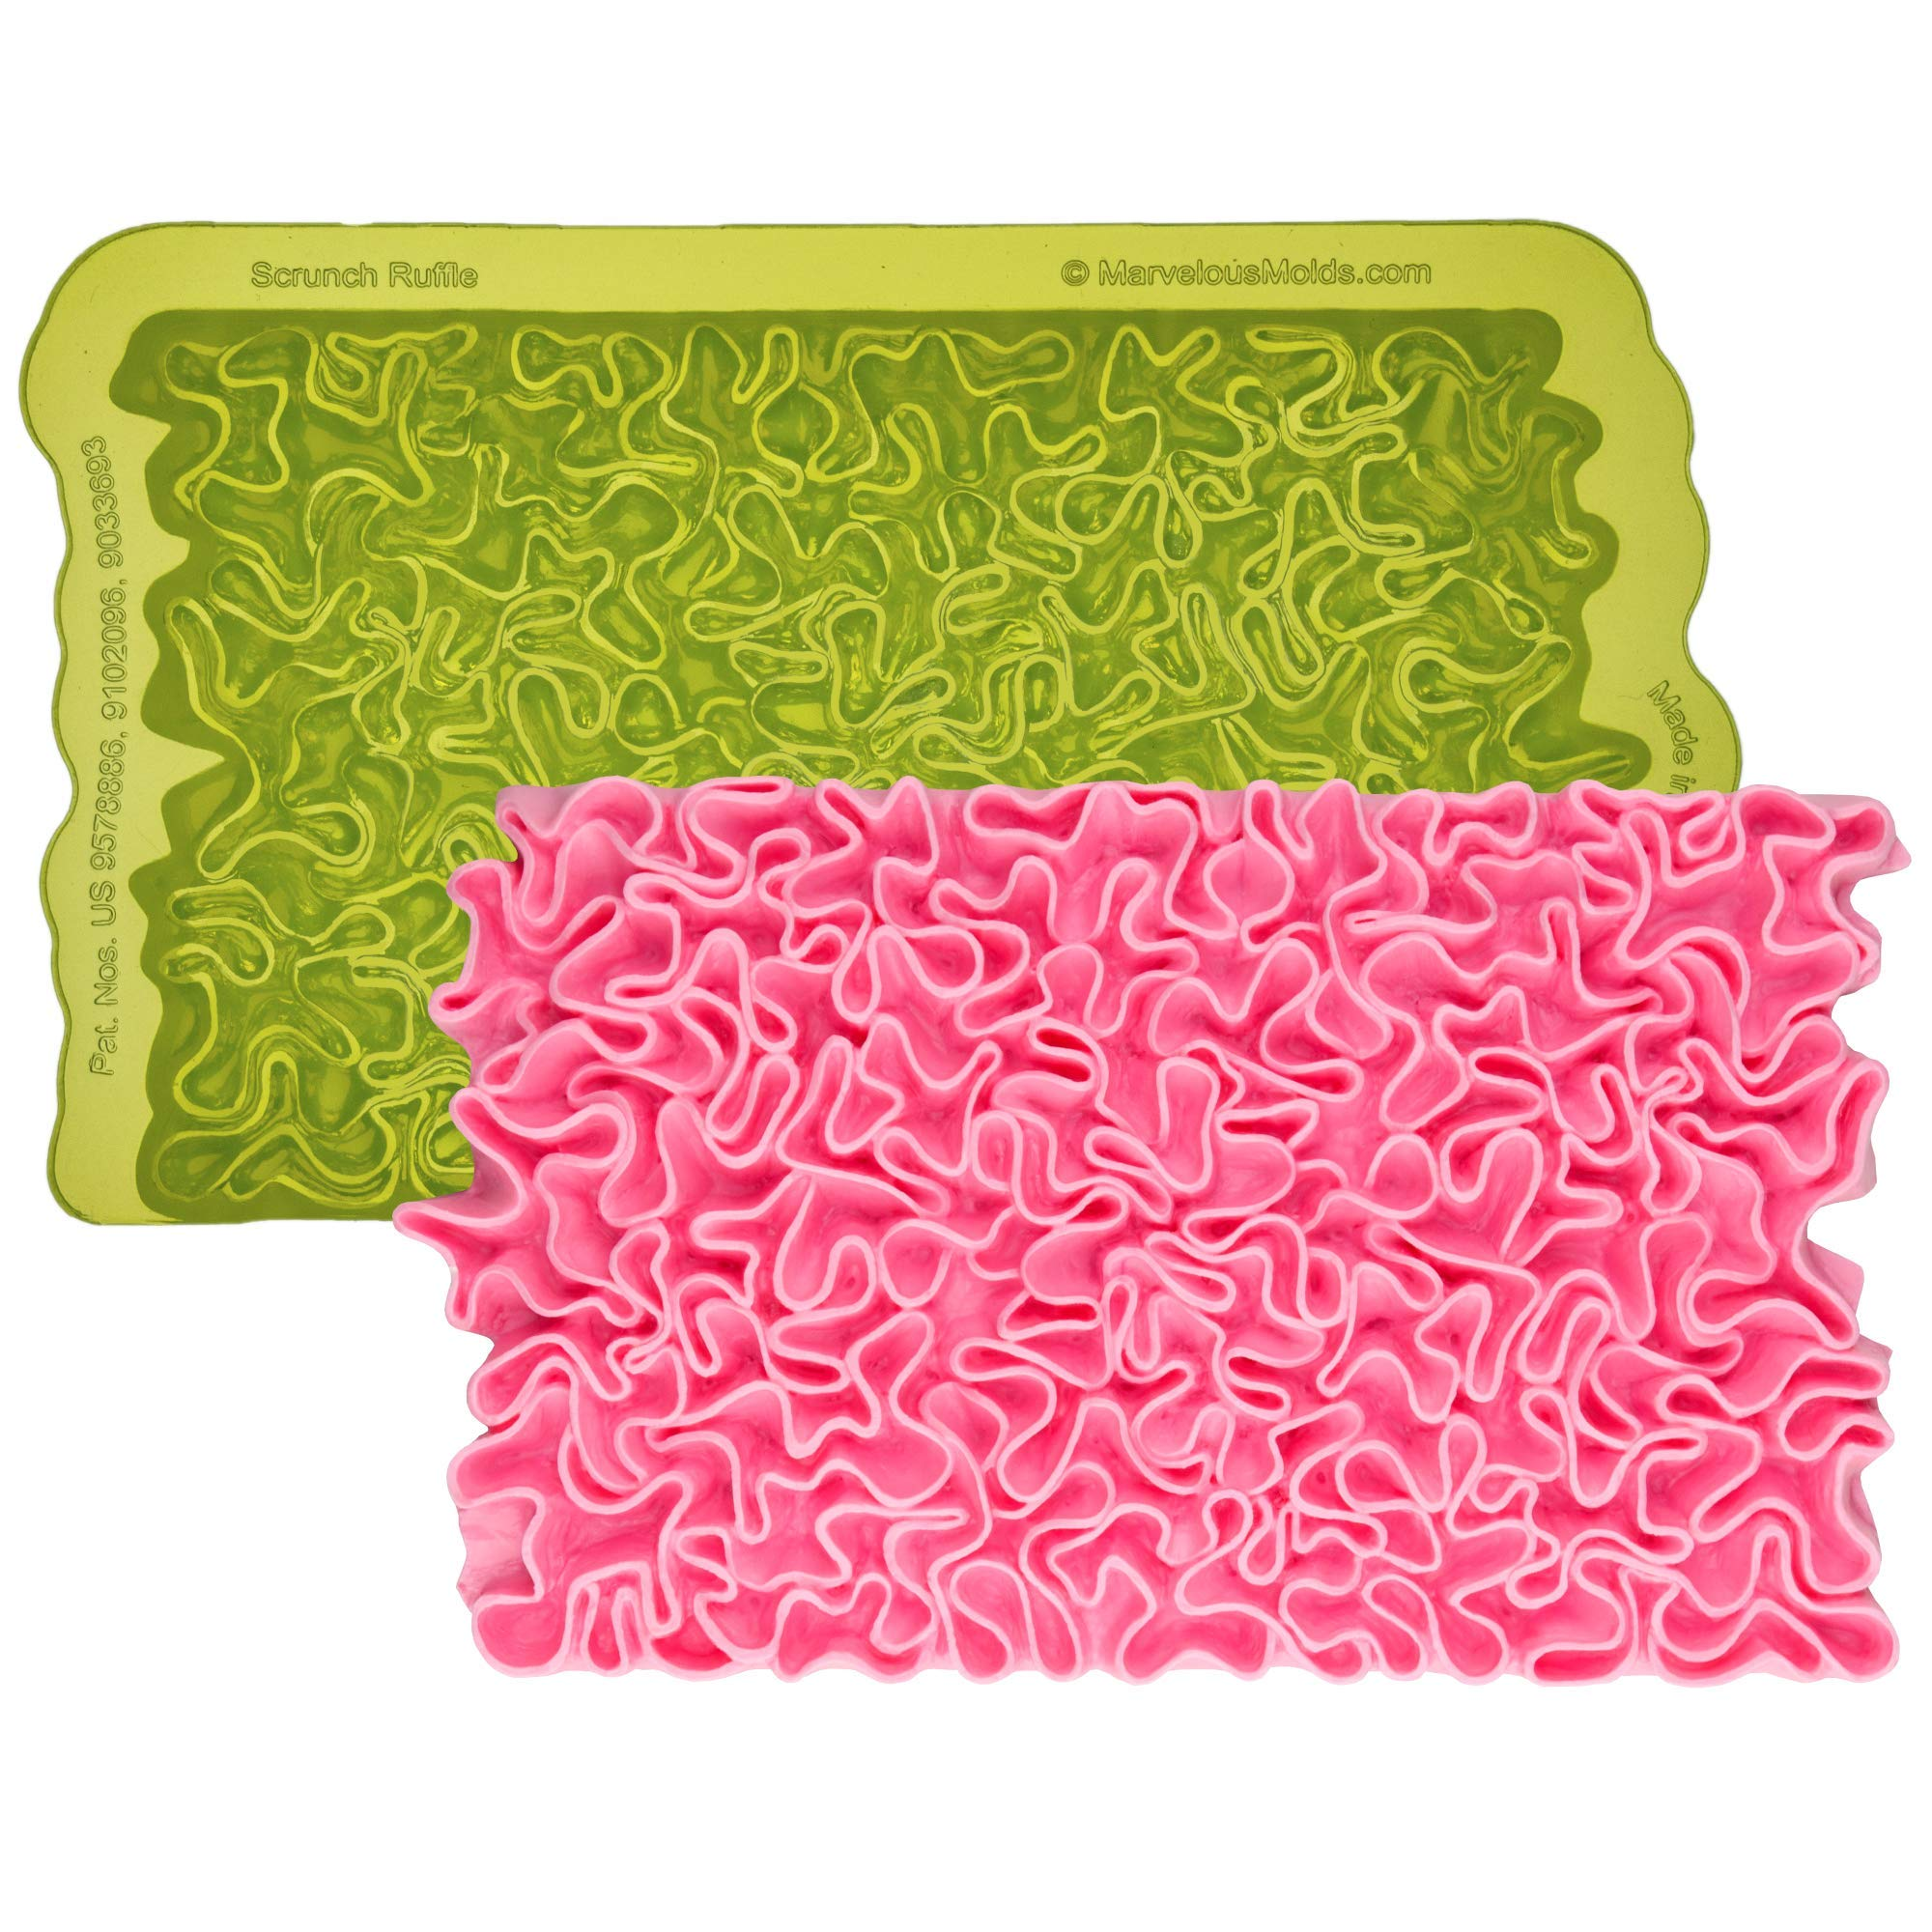 Marvelous Molds Scrunch Ruffle Simpress Silicone Mold | Cake Decorating with Fondant, Gumpaste Icing